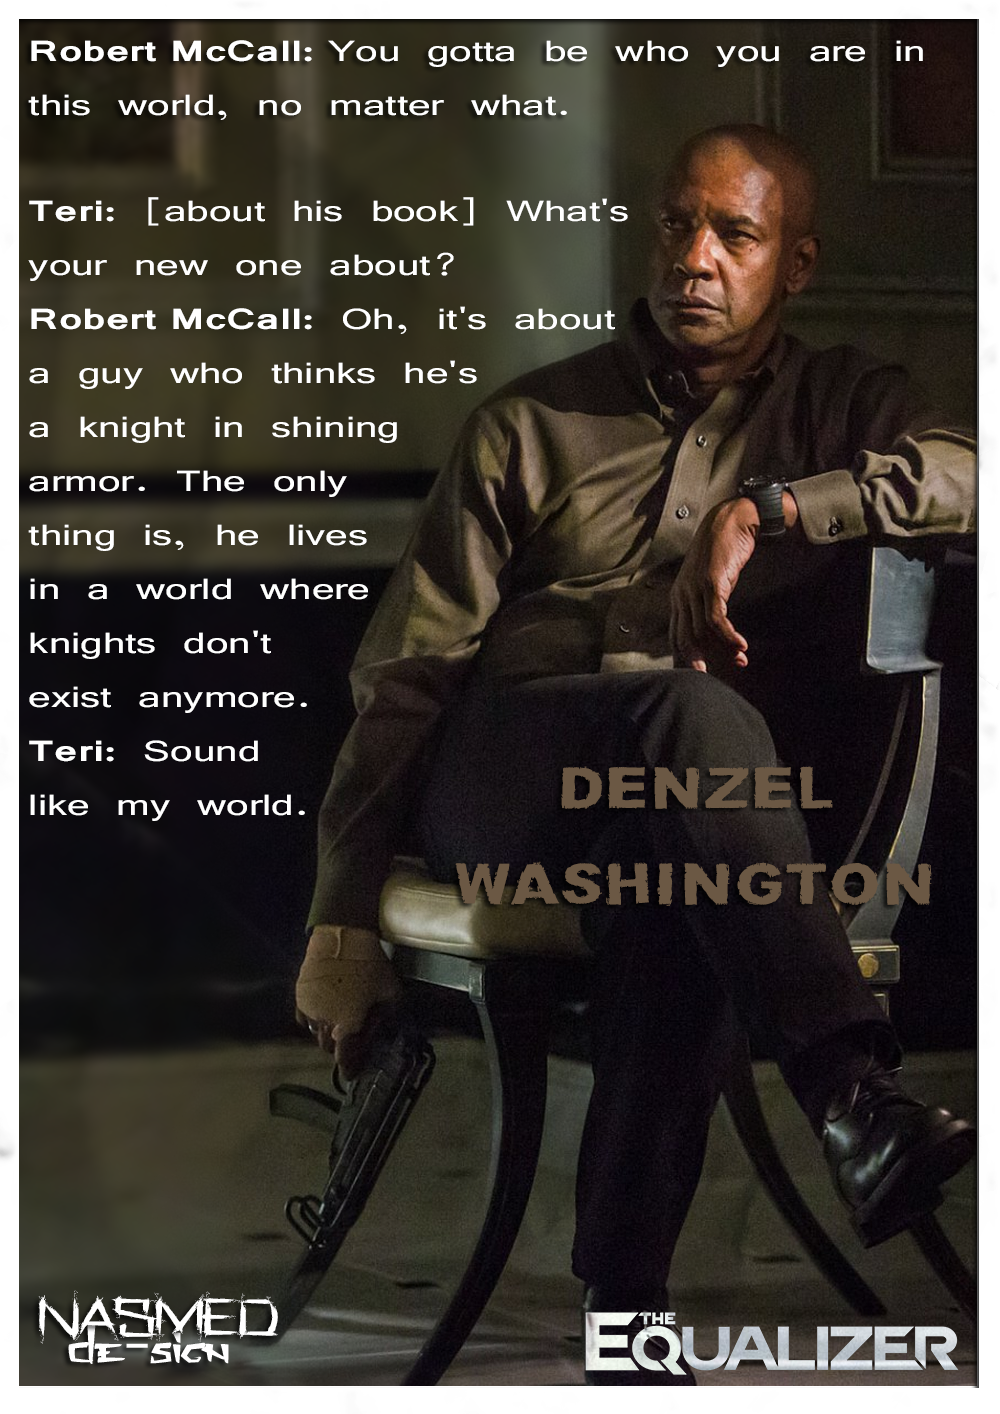 The Equalizer 2014 Quotes By Nassimox95 On Deviantart